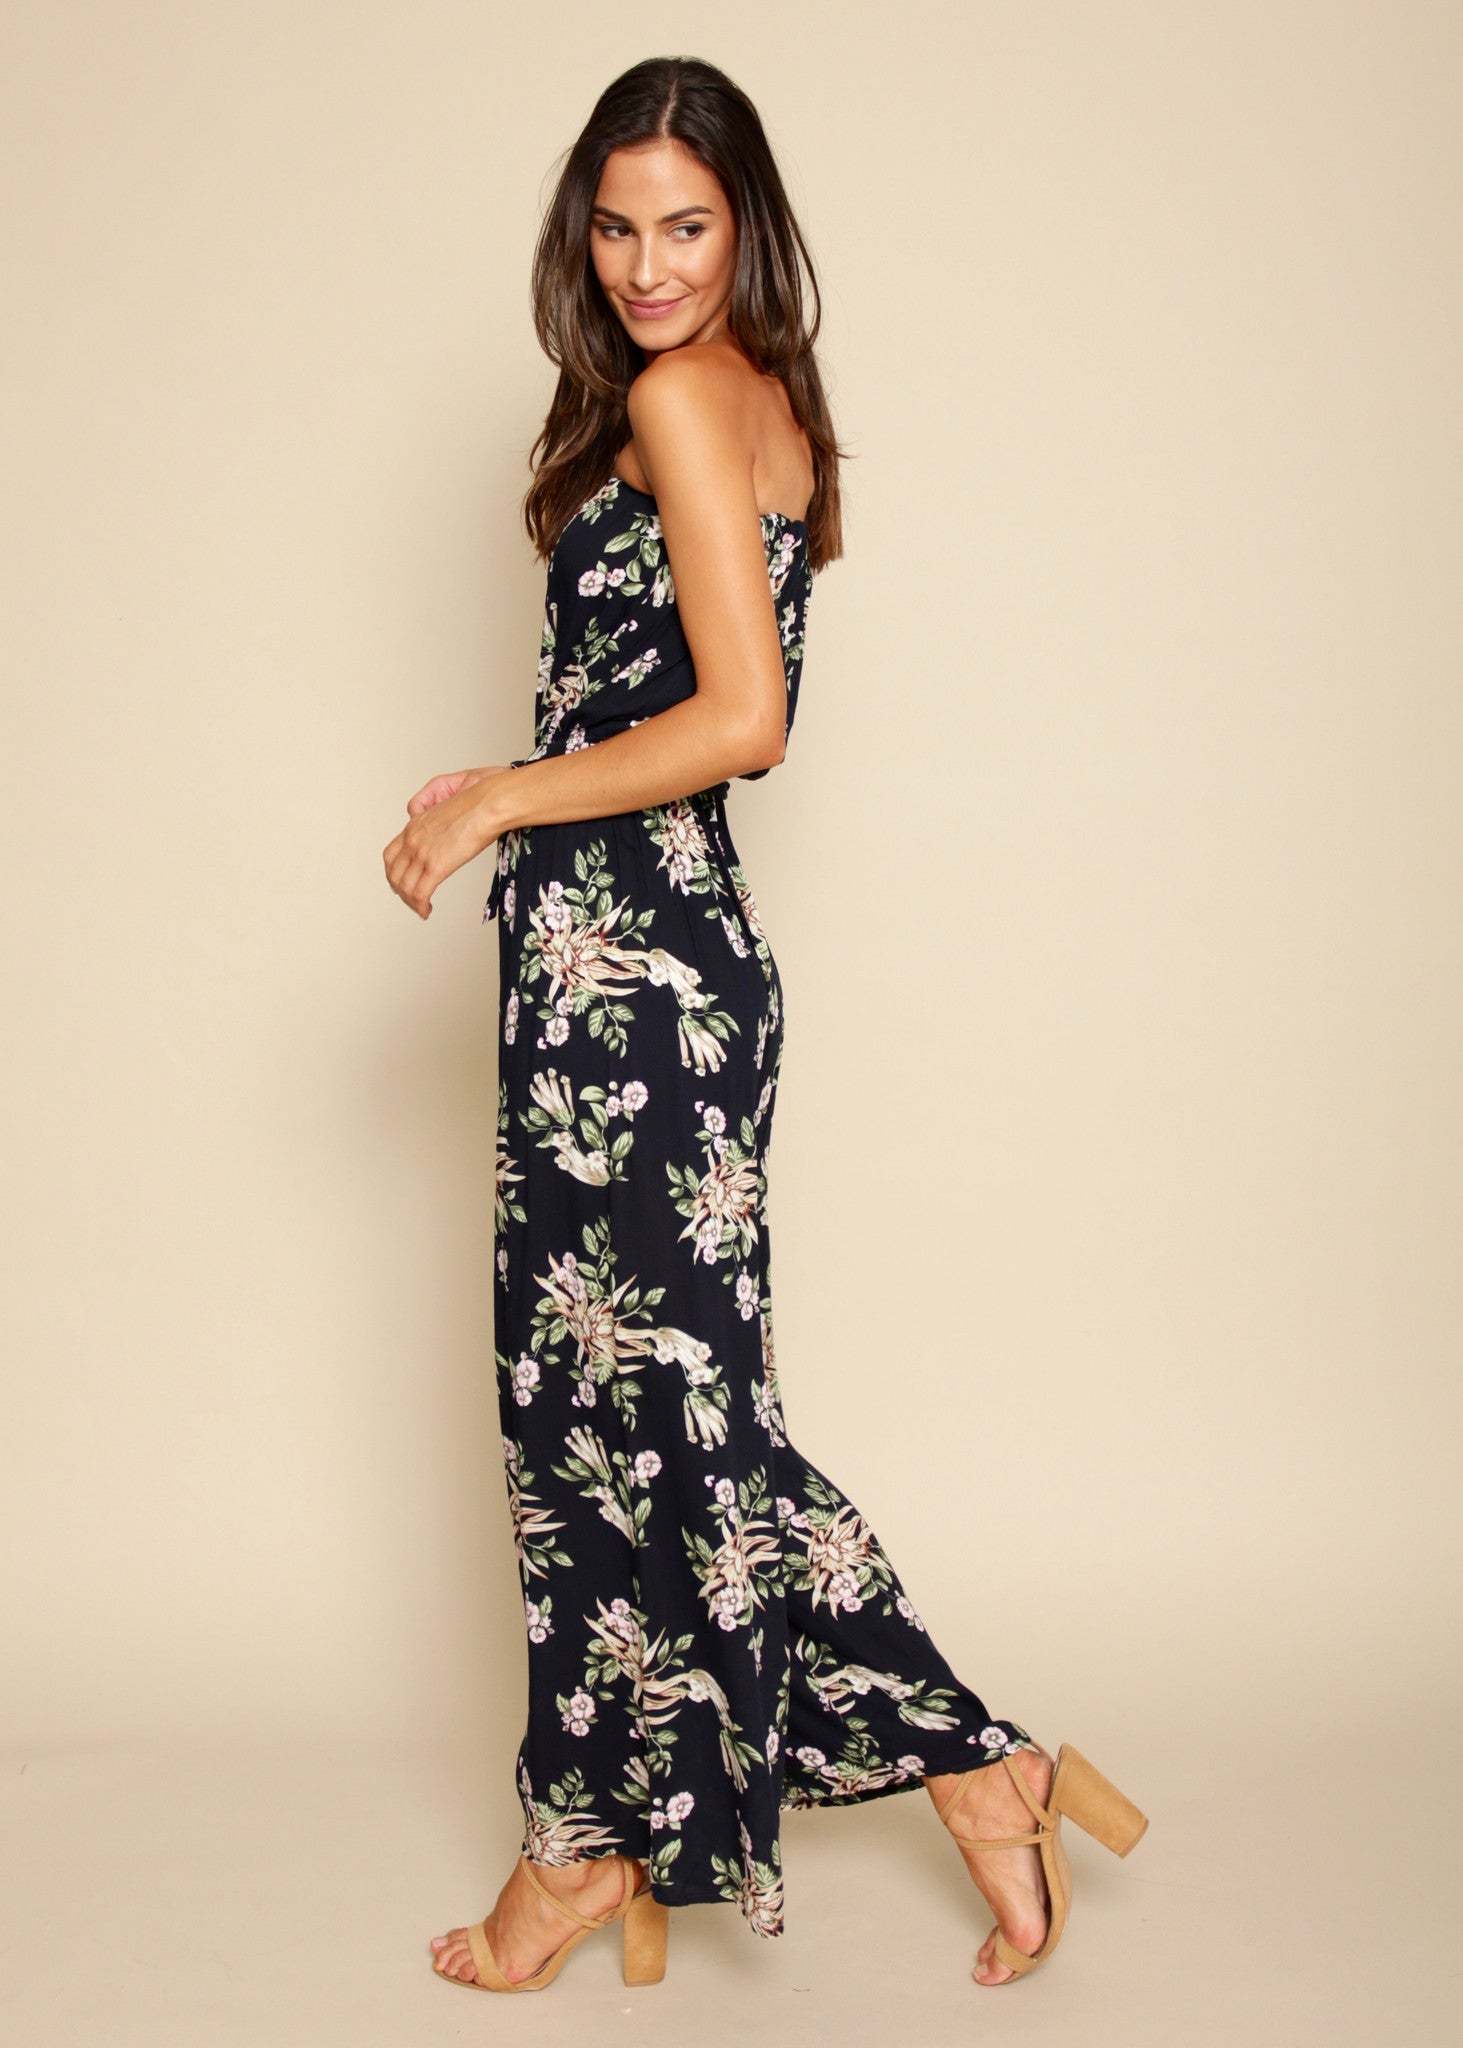 Dream Big Strapless Pantsuit - Midnight Garden